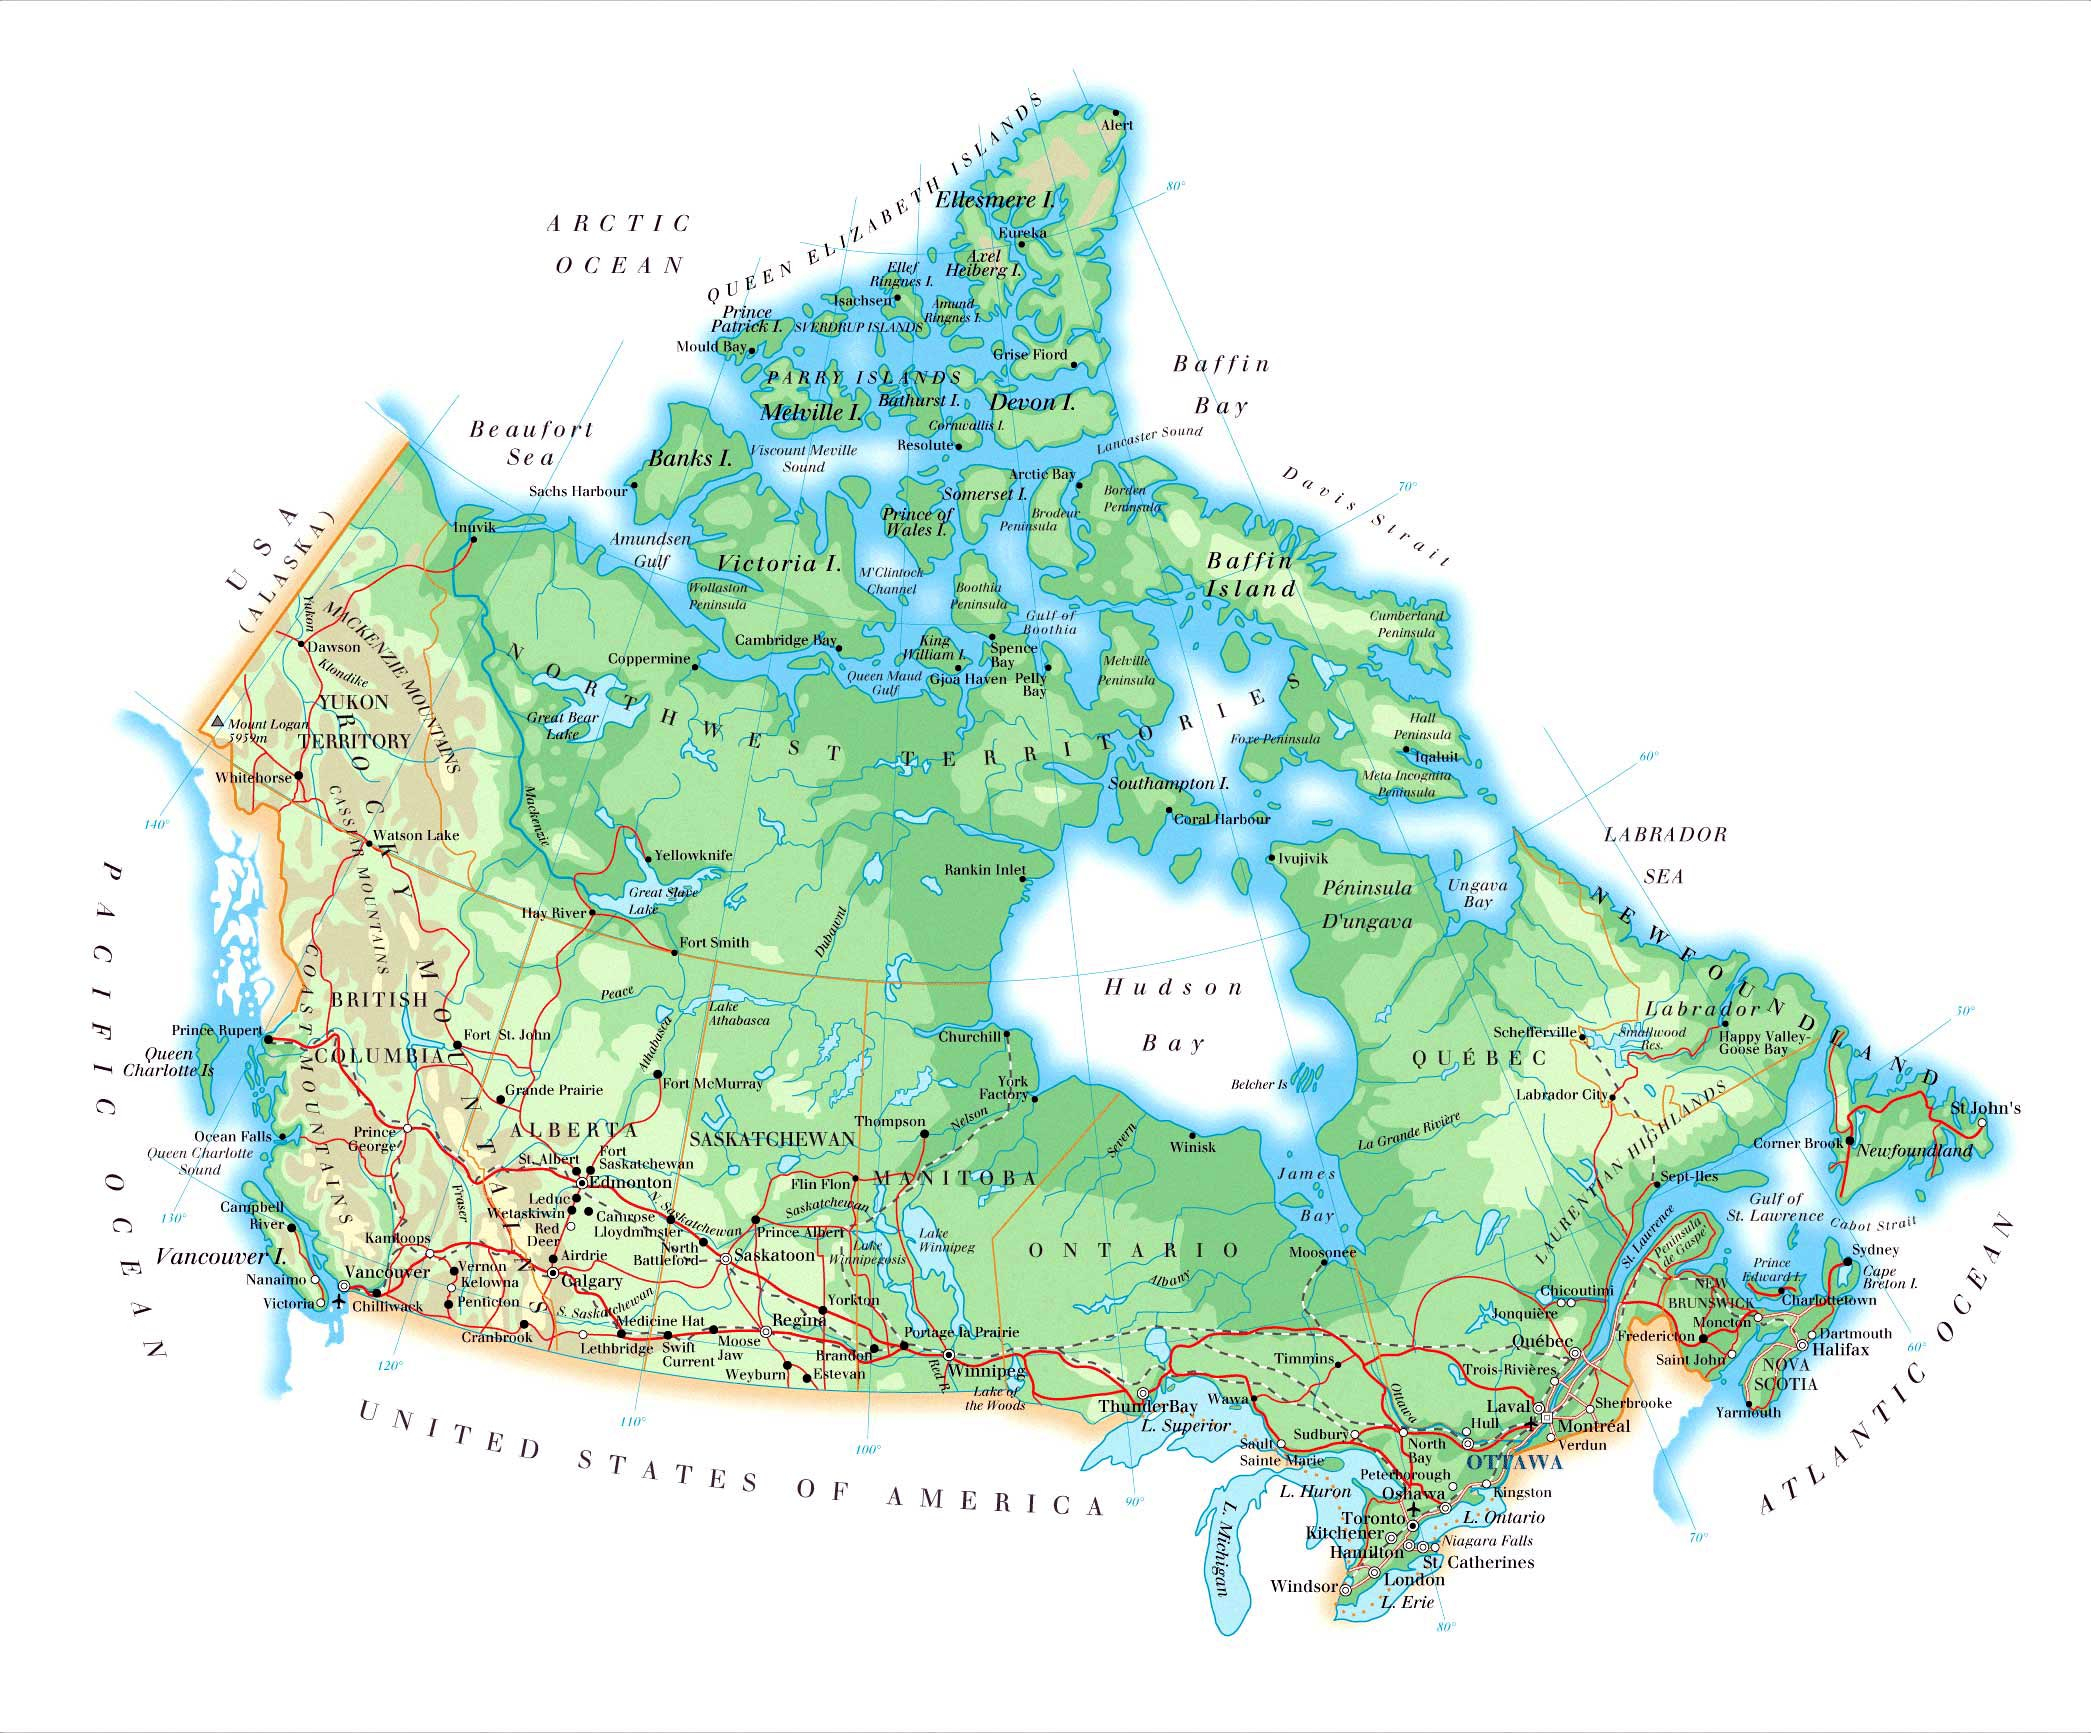 Canada Maps | Printable Maps Of Canada For Download - Large Printable Map Of Canada